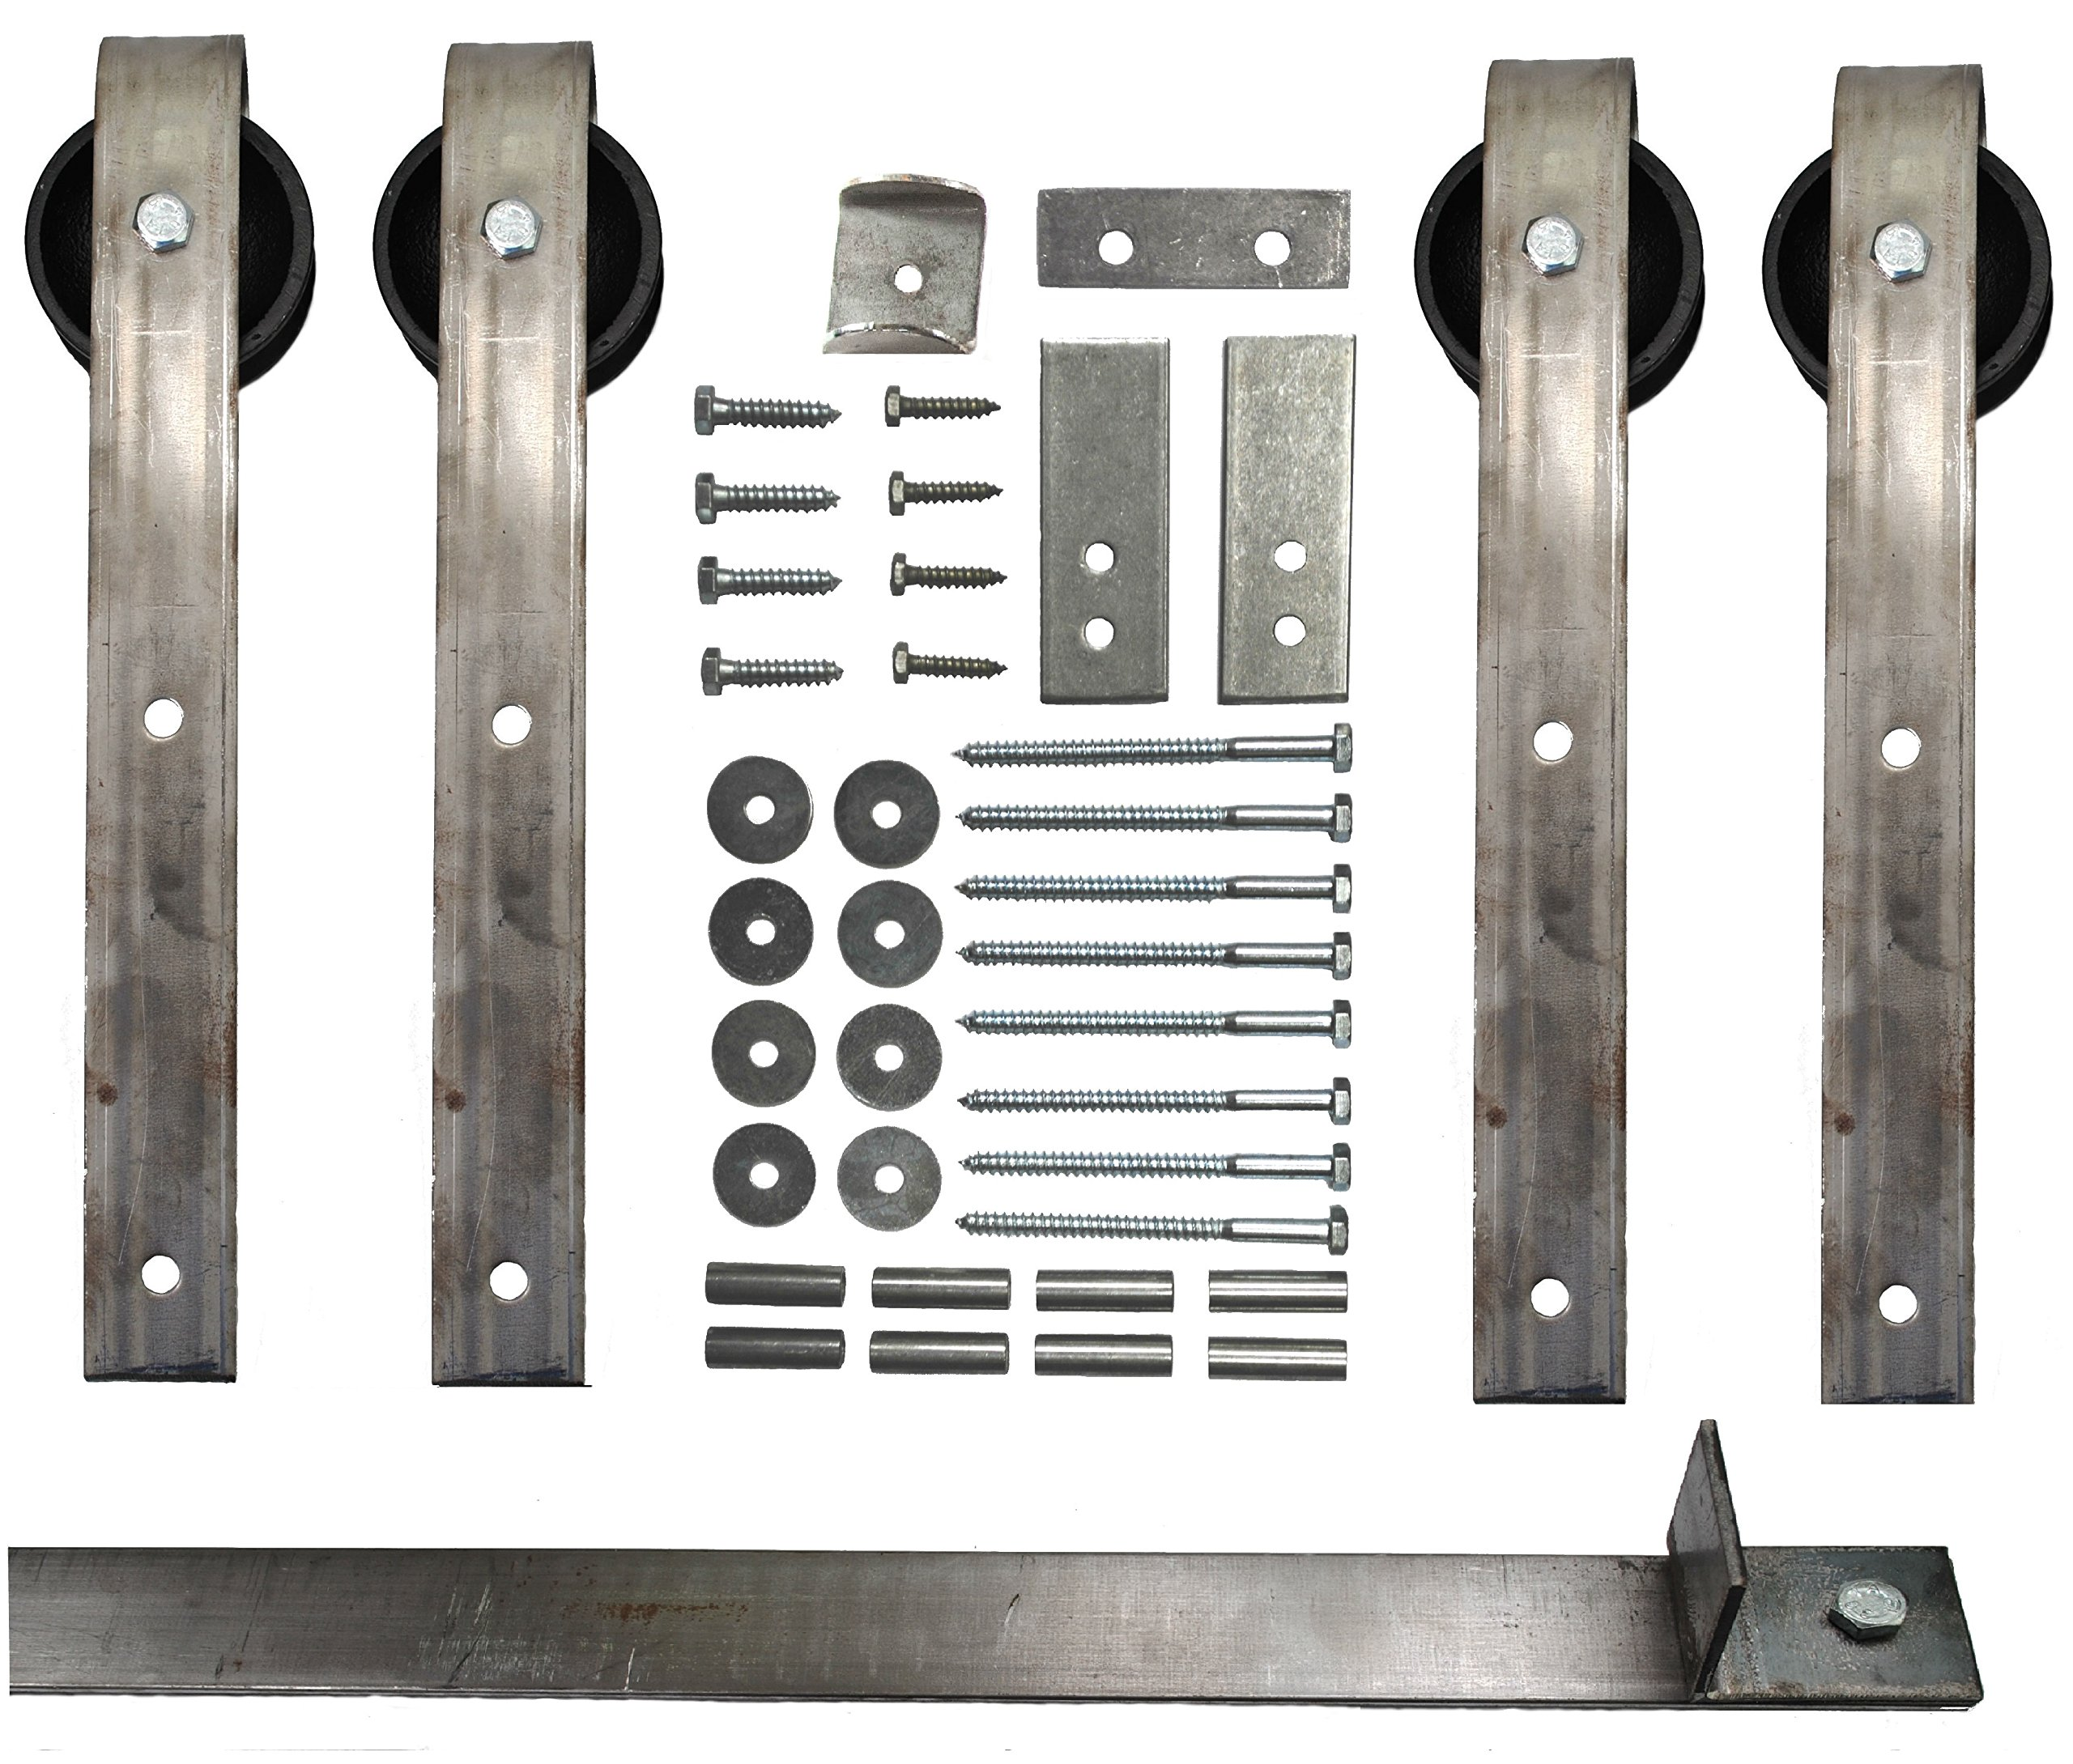 Double Sliding Barn Door Hardware Kit with 12 Ft. Track Included - Made in USA by Mapp Caster